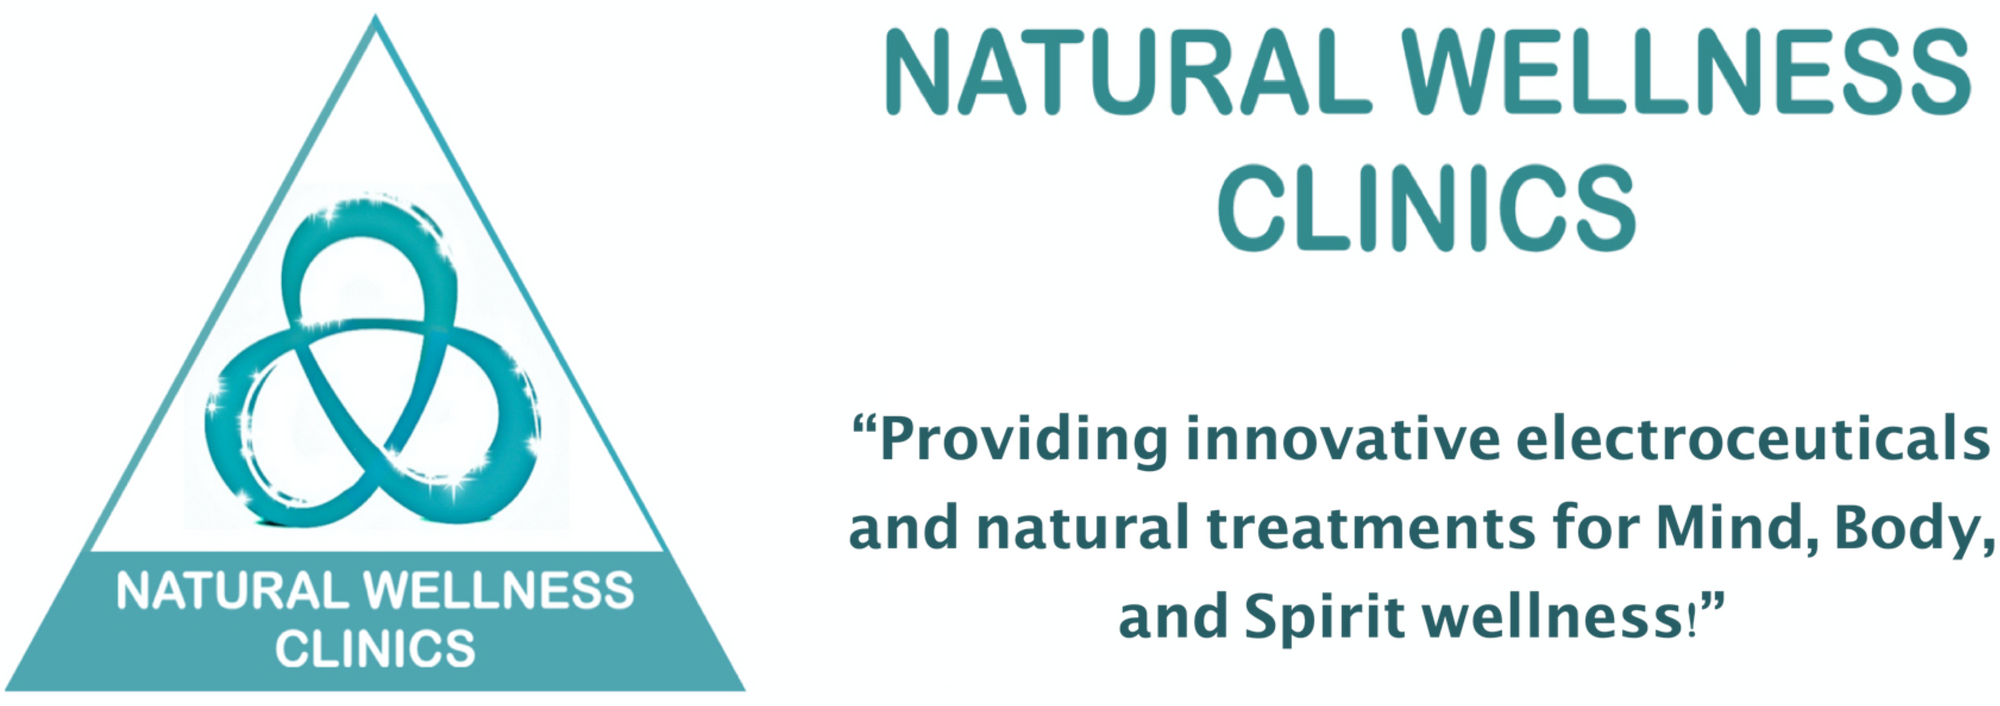 Natural Wellness Clinics